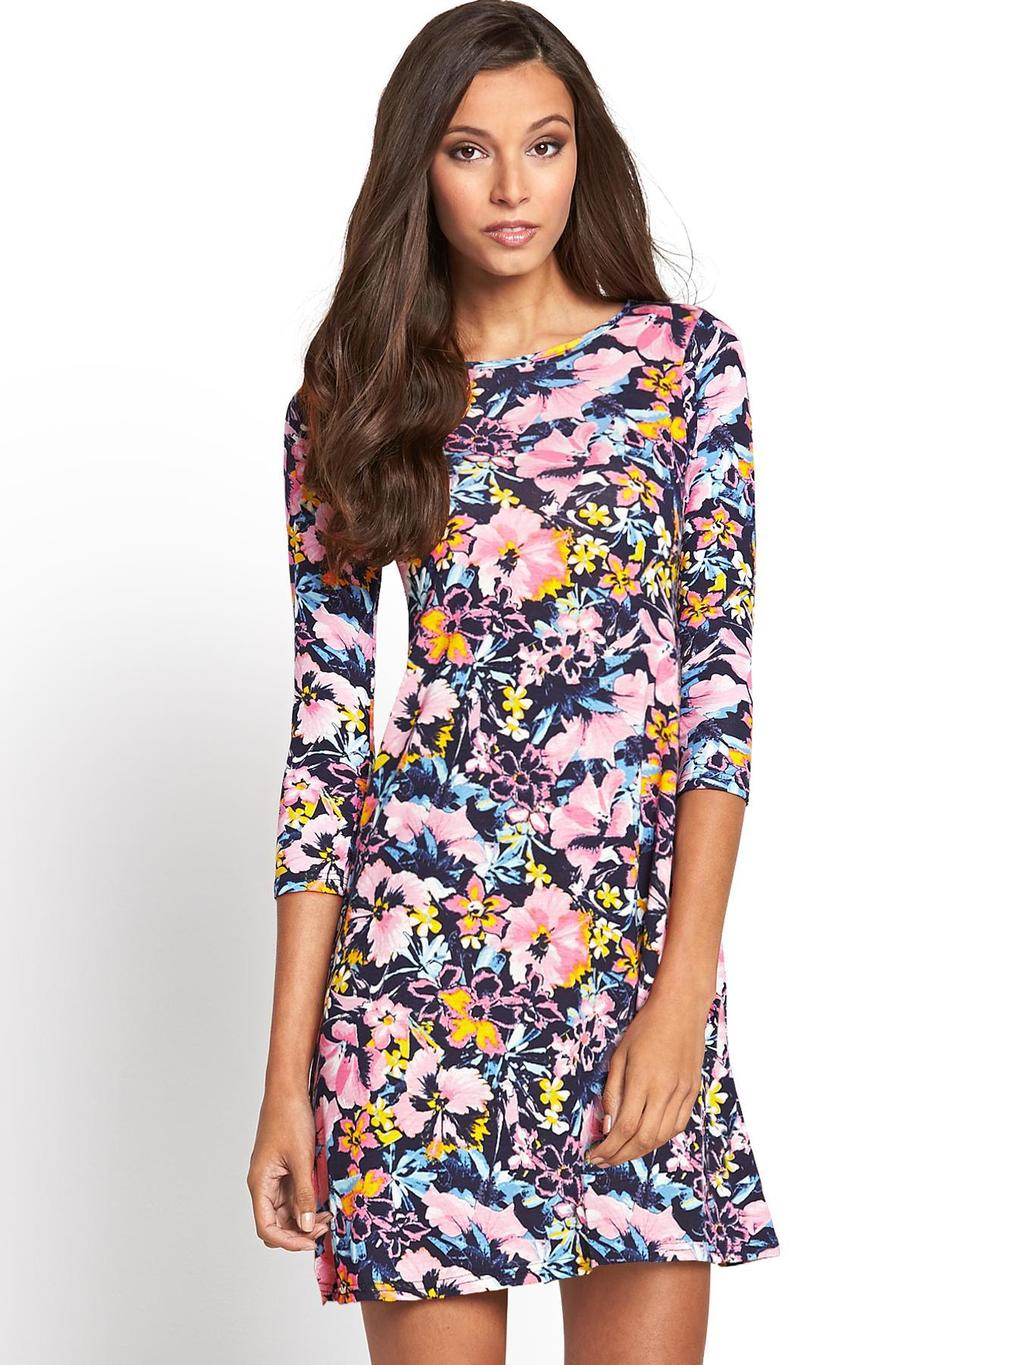 Floral Swing Dress - style: tea dress; length: mid thigh; neckline: round neck; occasions: casual, evening; fit: soft a-line; fibres: polyester/polyamide - stretch; predominant colour: multicoloured; sleeve length: 3/4 length; sleeve style: standard; pattern type: fabric; pattern size: big & busy; pattern: florals; texture group: jersey - stretchy/drapey; trends: furious florals; season: s/s 2014; multicoloured: multicoloured